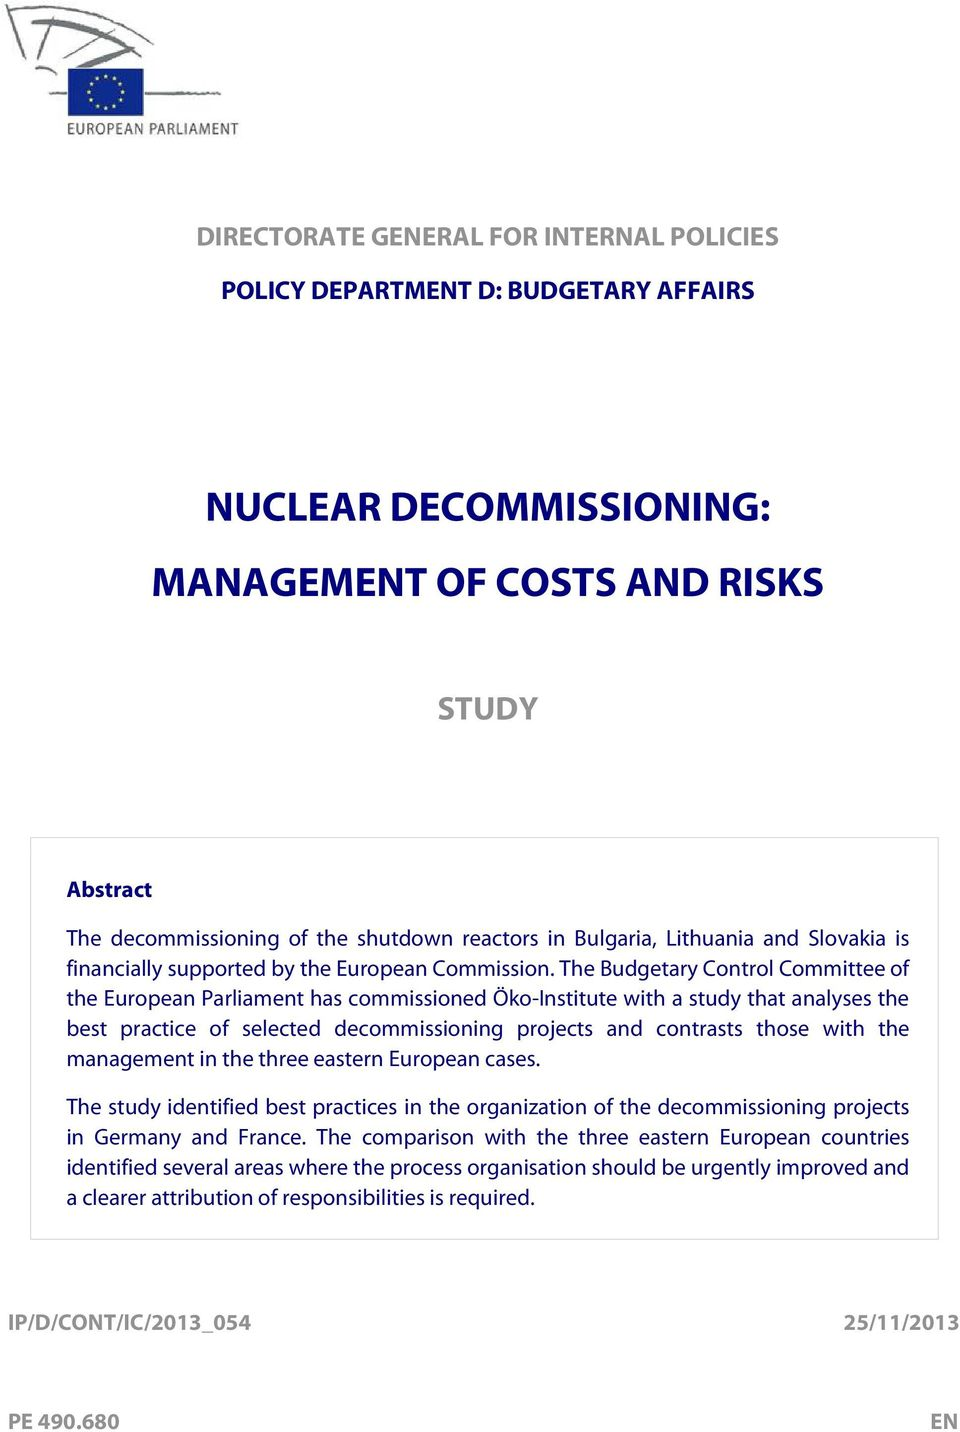 The Budgetary Control Committee of the European Parliament has commissioned Öko-Institute with a study that analyses the best practice of selected decommissioning projects and contrasts those with